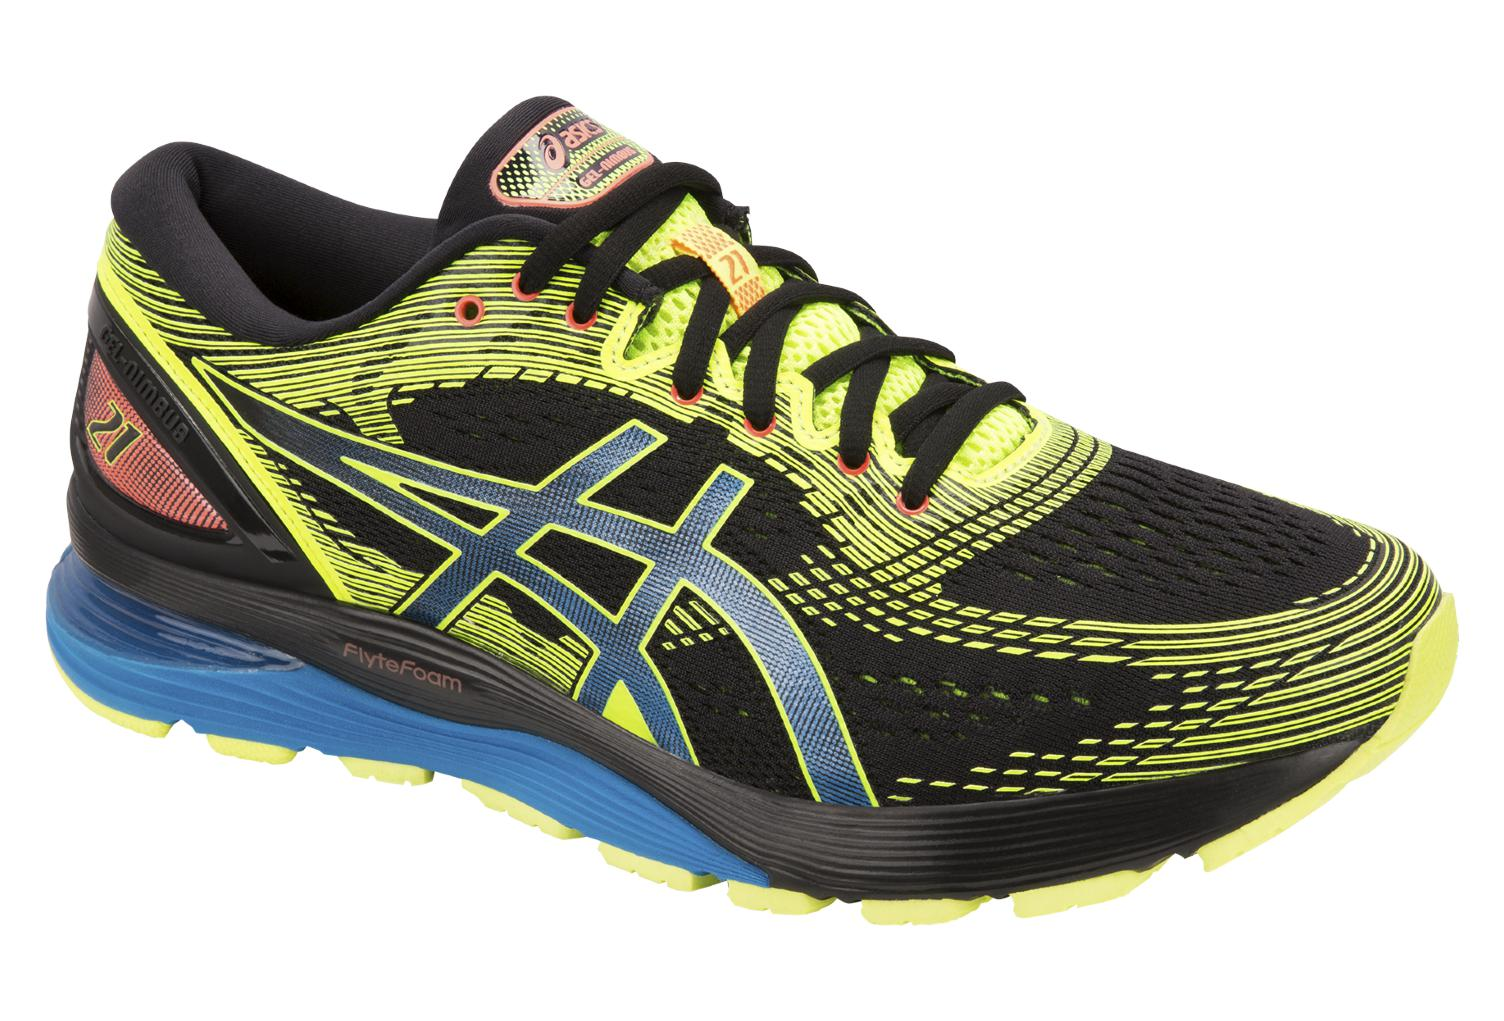 5d8b6347c6 Asics Shoes Run Gel Nimbus 21 OPTIMISM Black Yellow Blue